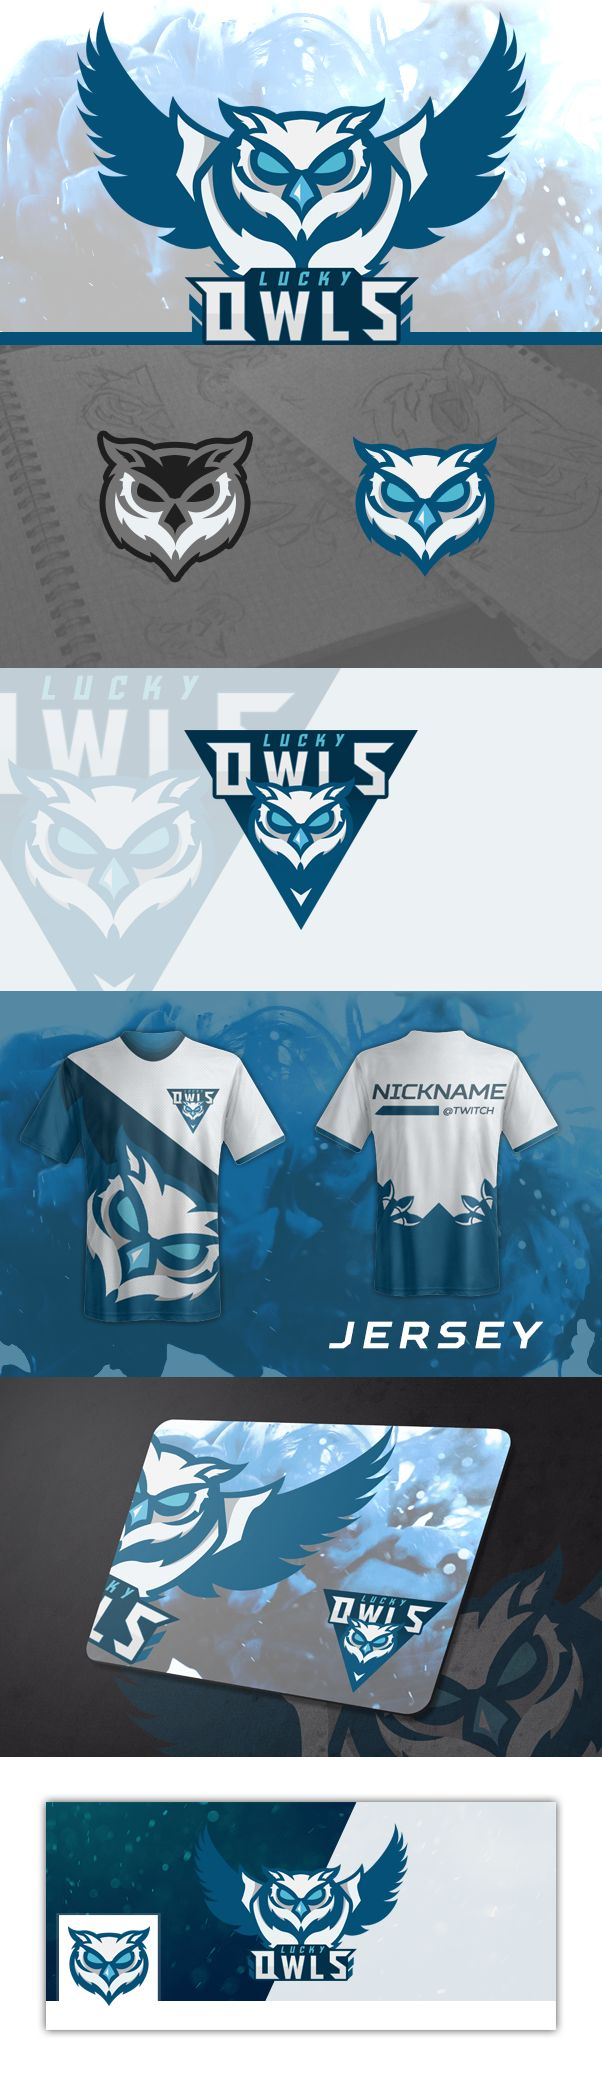 Lucky Owls Gaming (Concept logo) on Behance